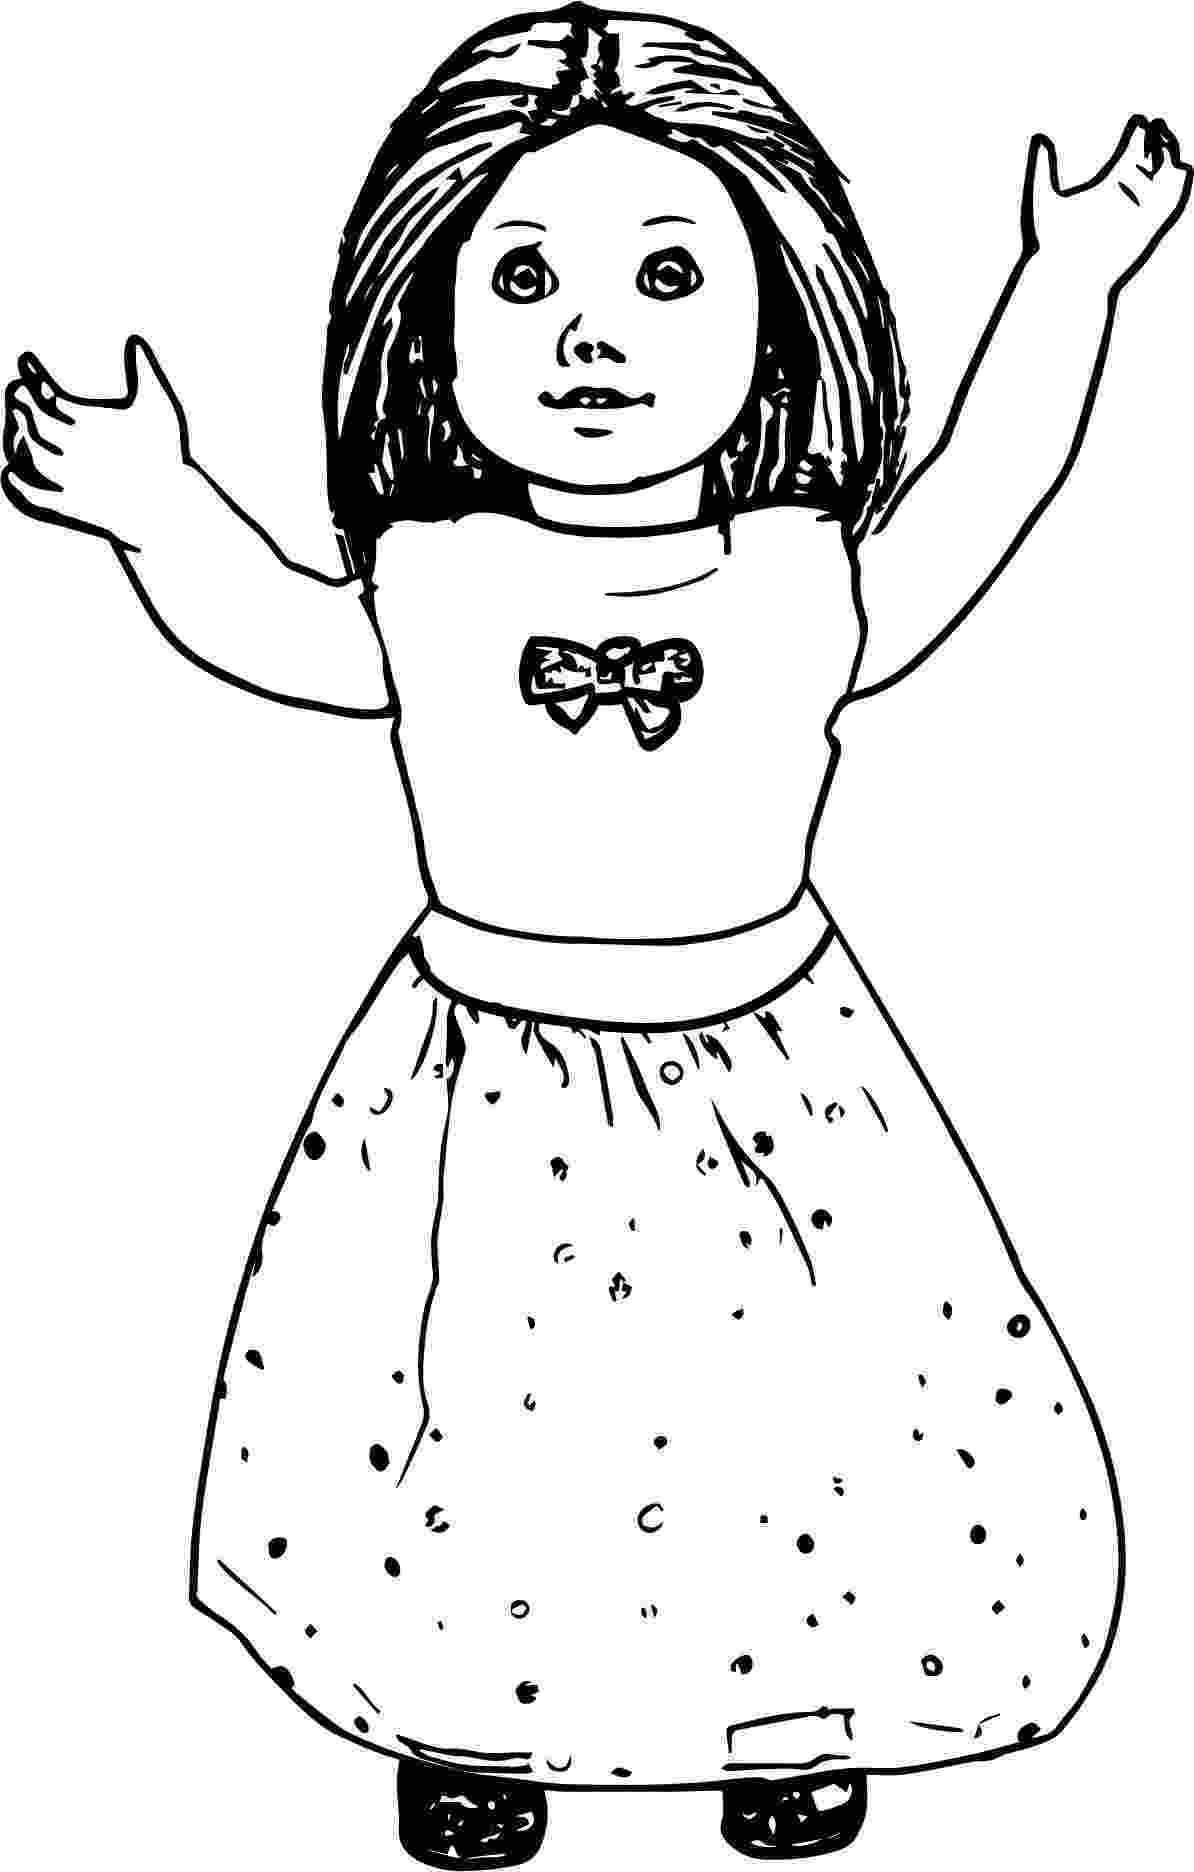 american girl doll free coloring pages american girl doll coloring pages to download and print american girl free coloring pages doll